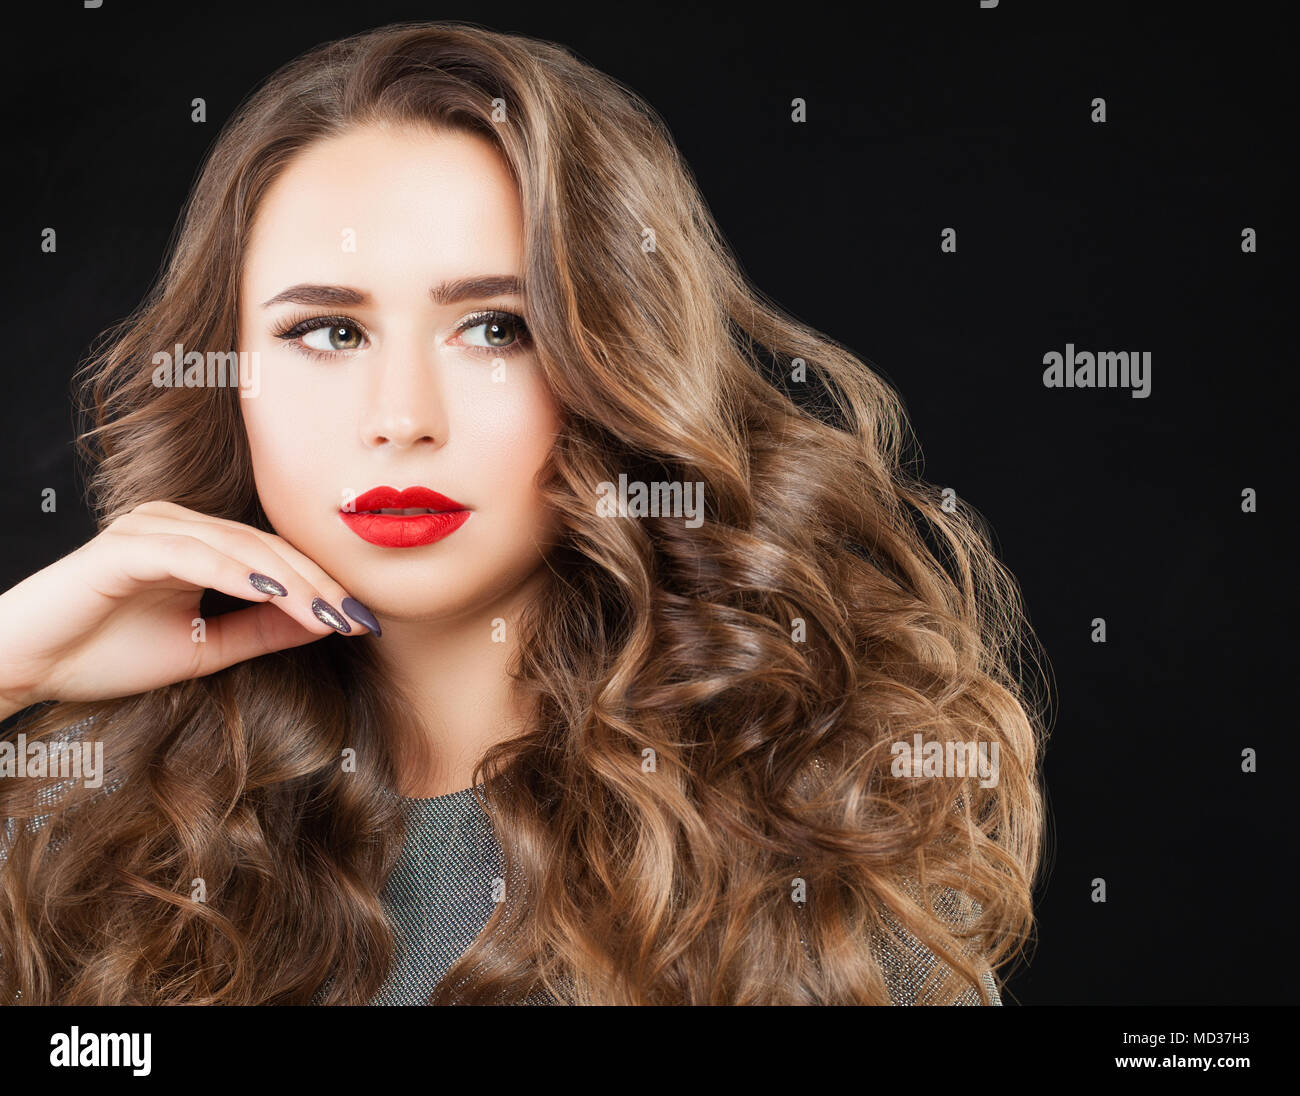 Beauty Fashion Portrait of Cute Girl with Makeup on Black Background on Black Banner Background Stock Photo